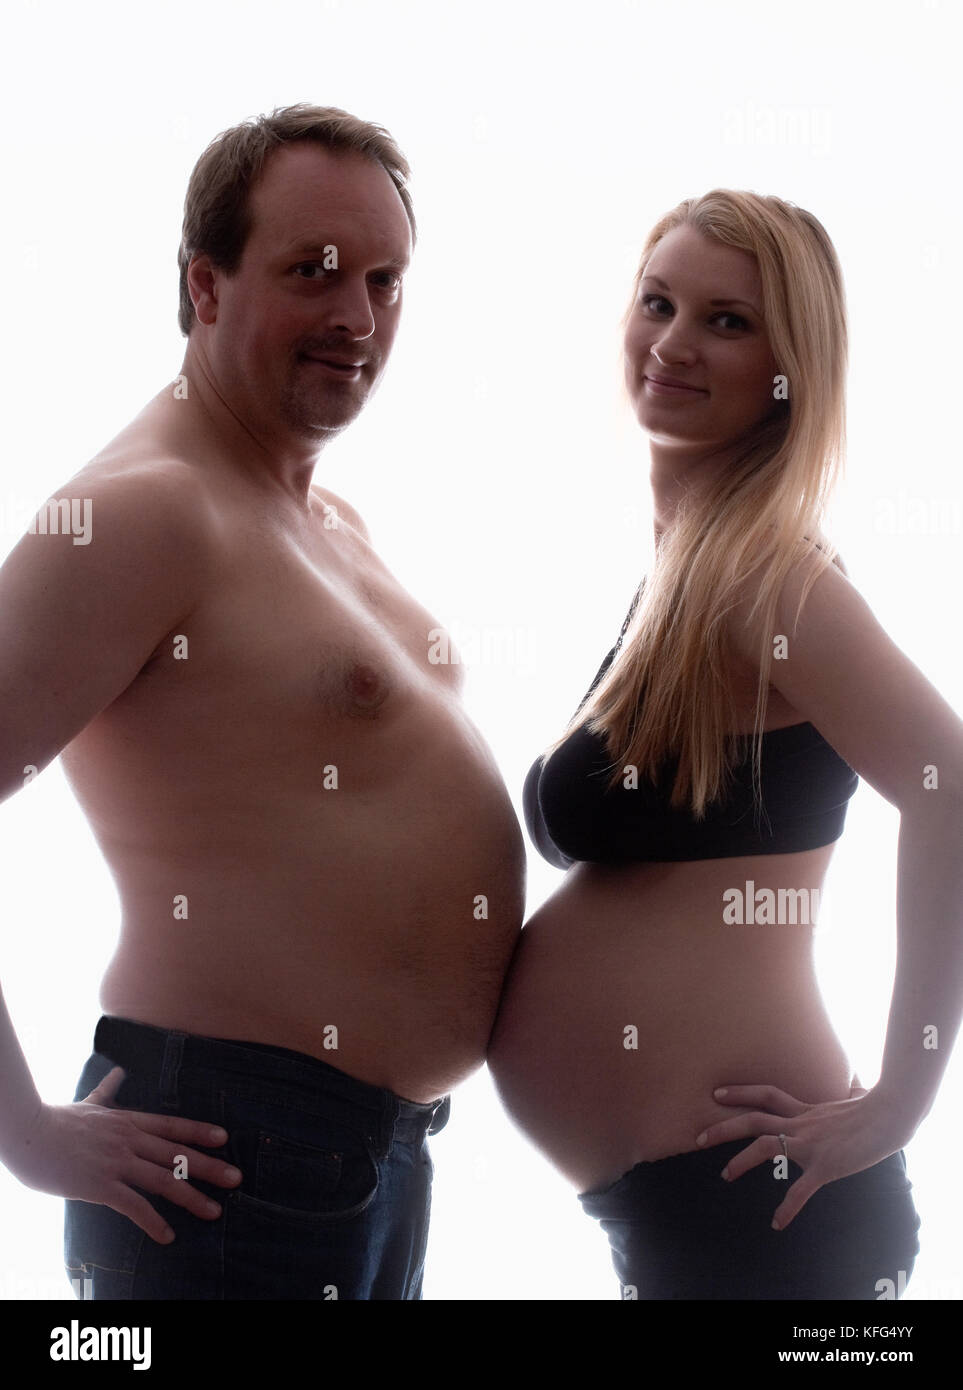 Pregnant Woman and her Partner Measuring Bellies. - Stock Image